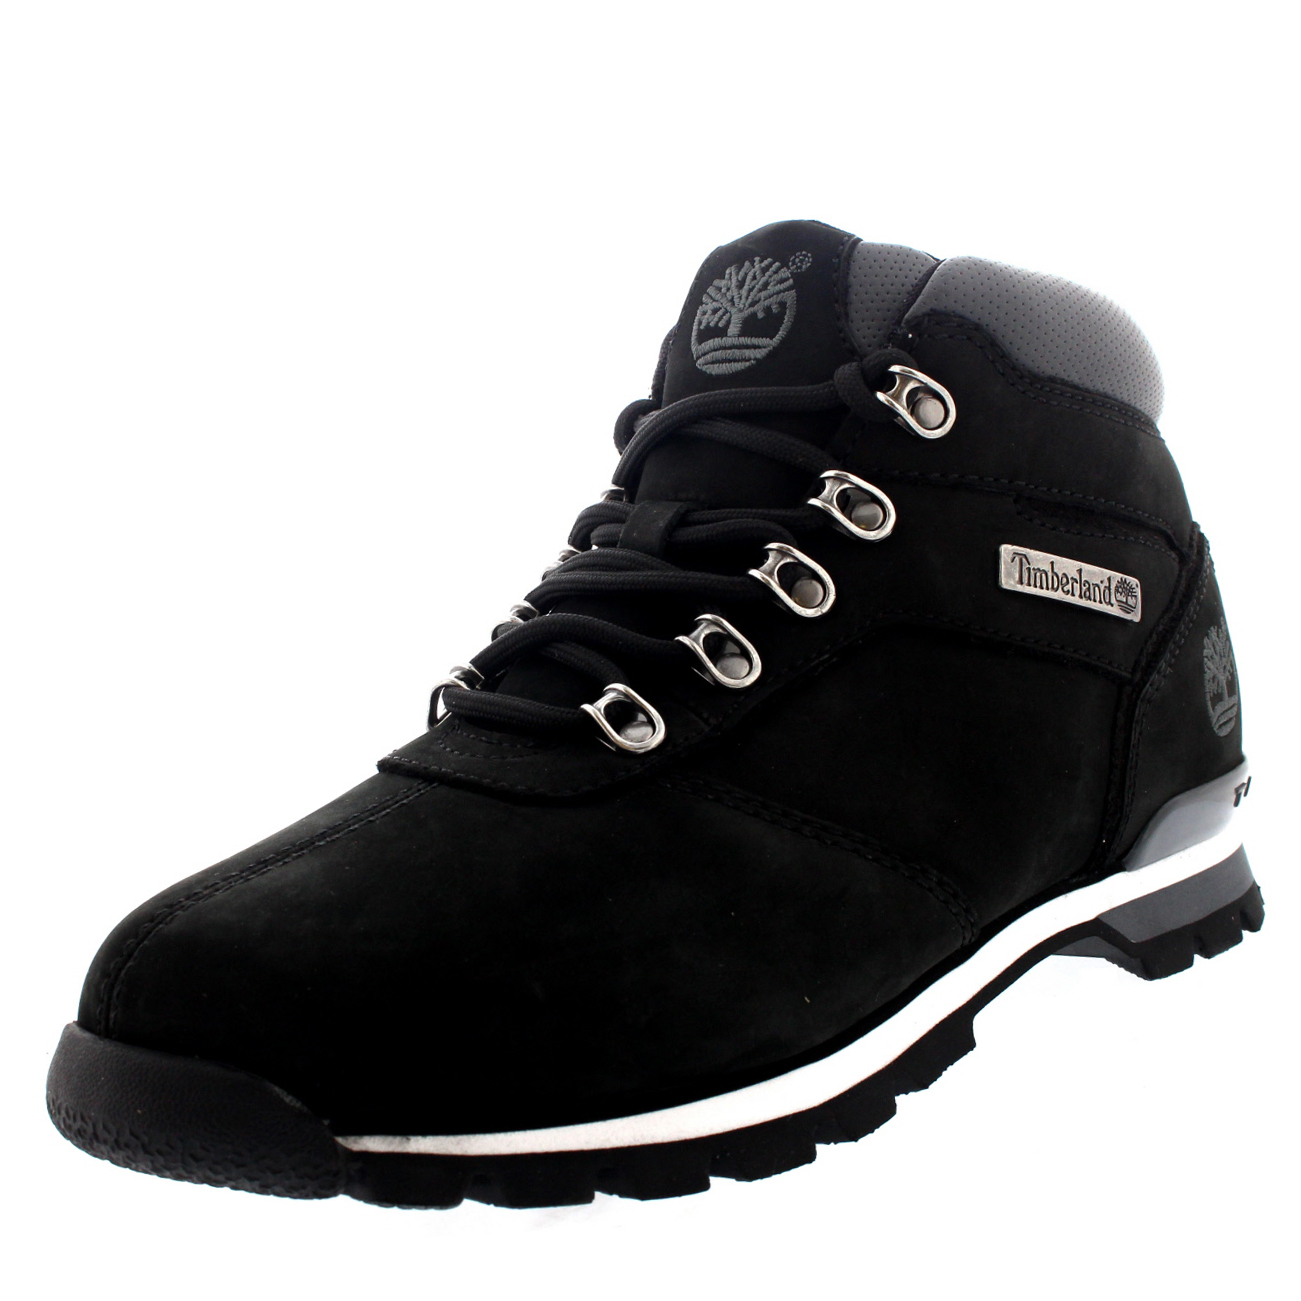 da74738b5b880 Details about Mens Timberland Splitrock 2 Hiker Winter Casual Hiking Ankle  Boots All Sizes